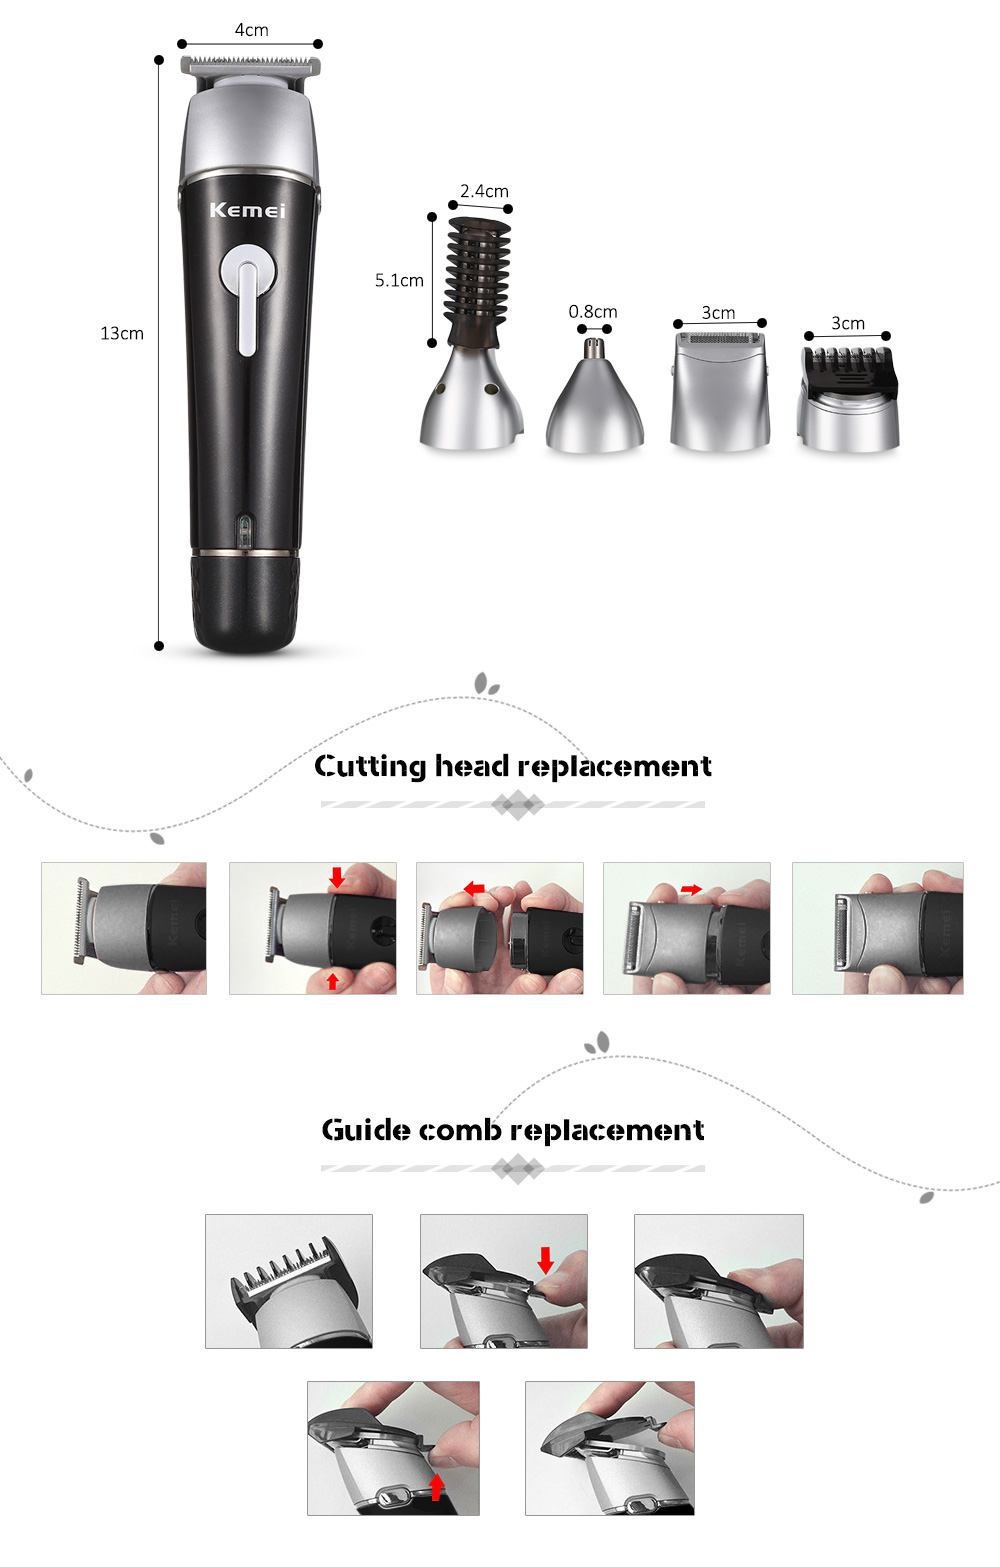 KM - 1015 5 in 1 Electric Washable Nose Ear Body Hair Trimmer Beard Shaver- Black EU Plug